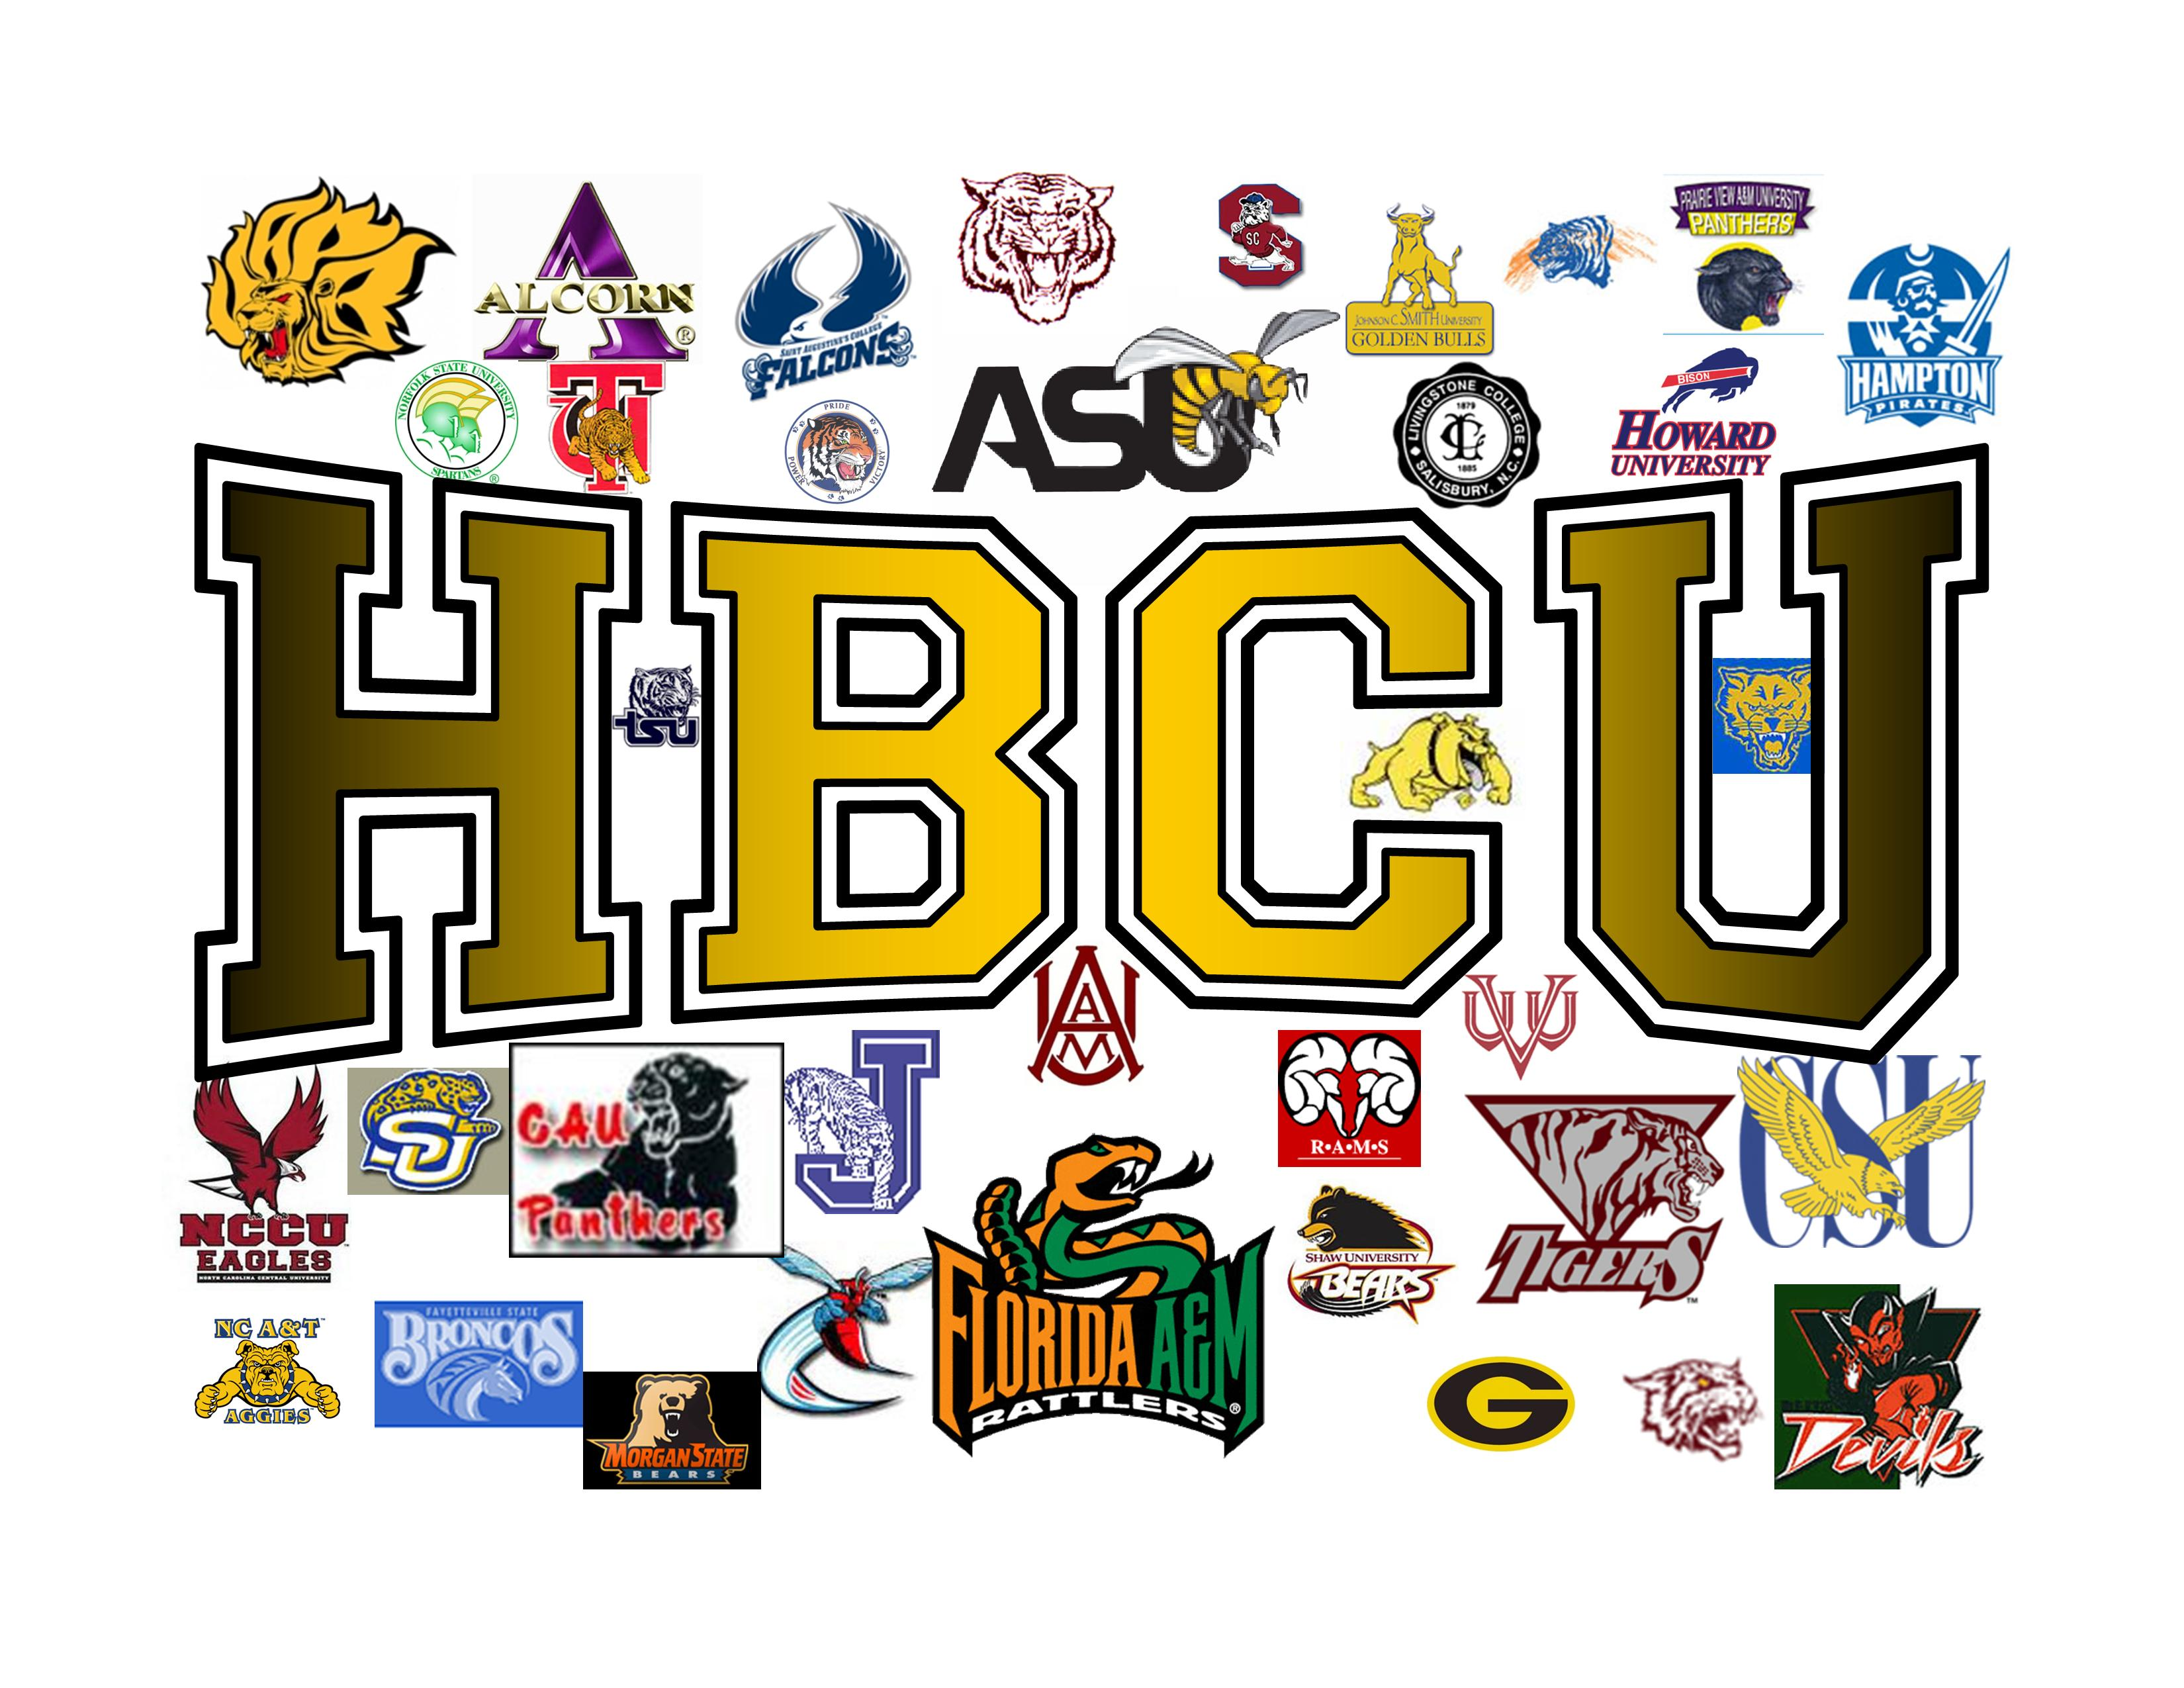 I want to know the prerequisites for Historic Black Colleges in florida?